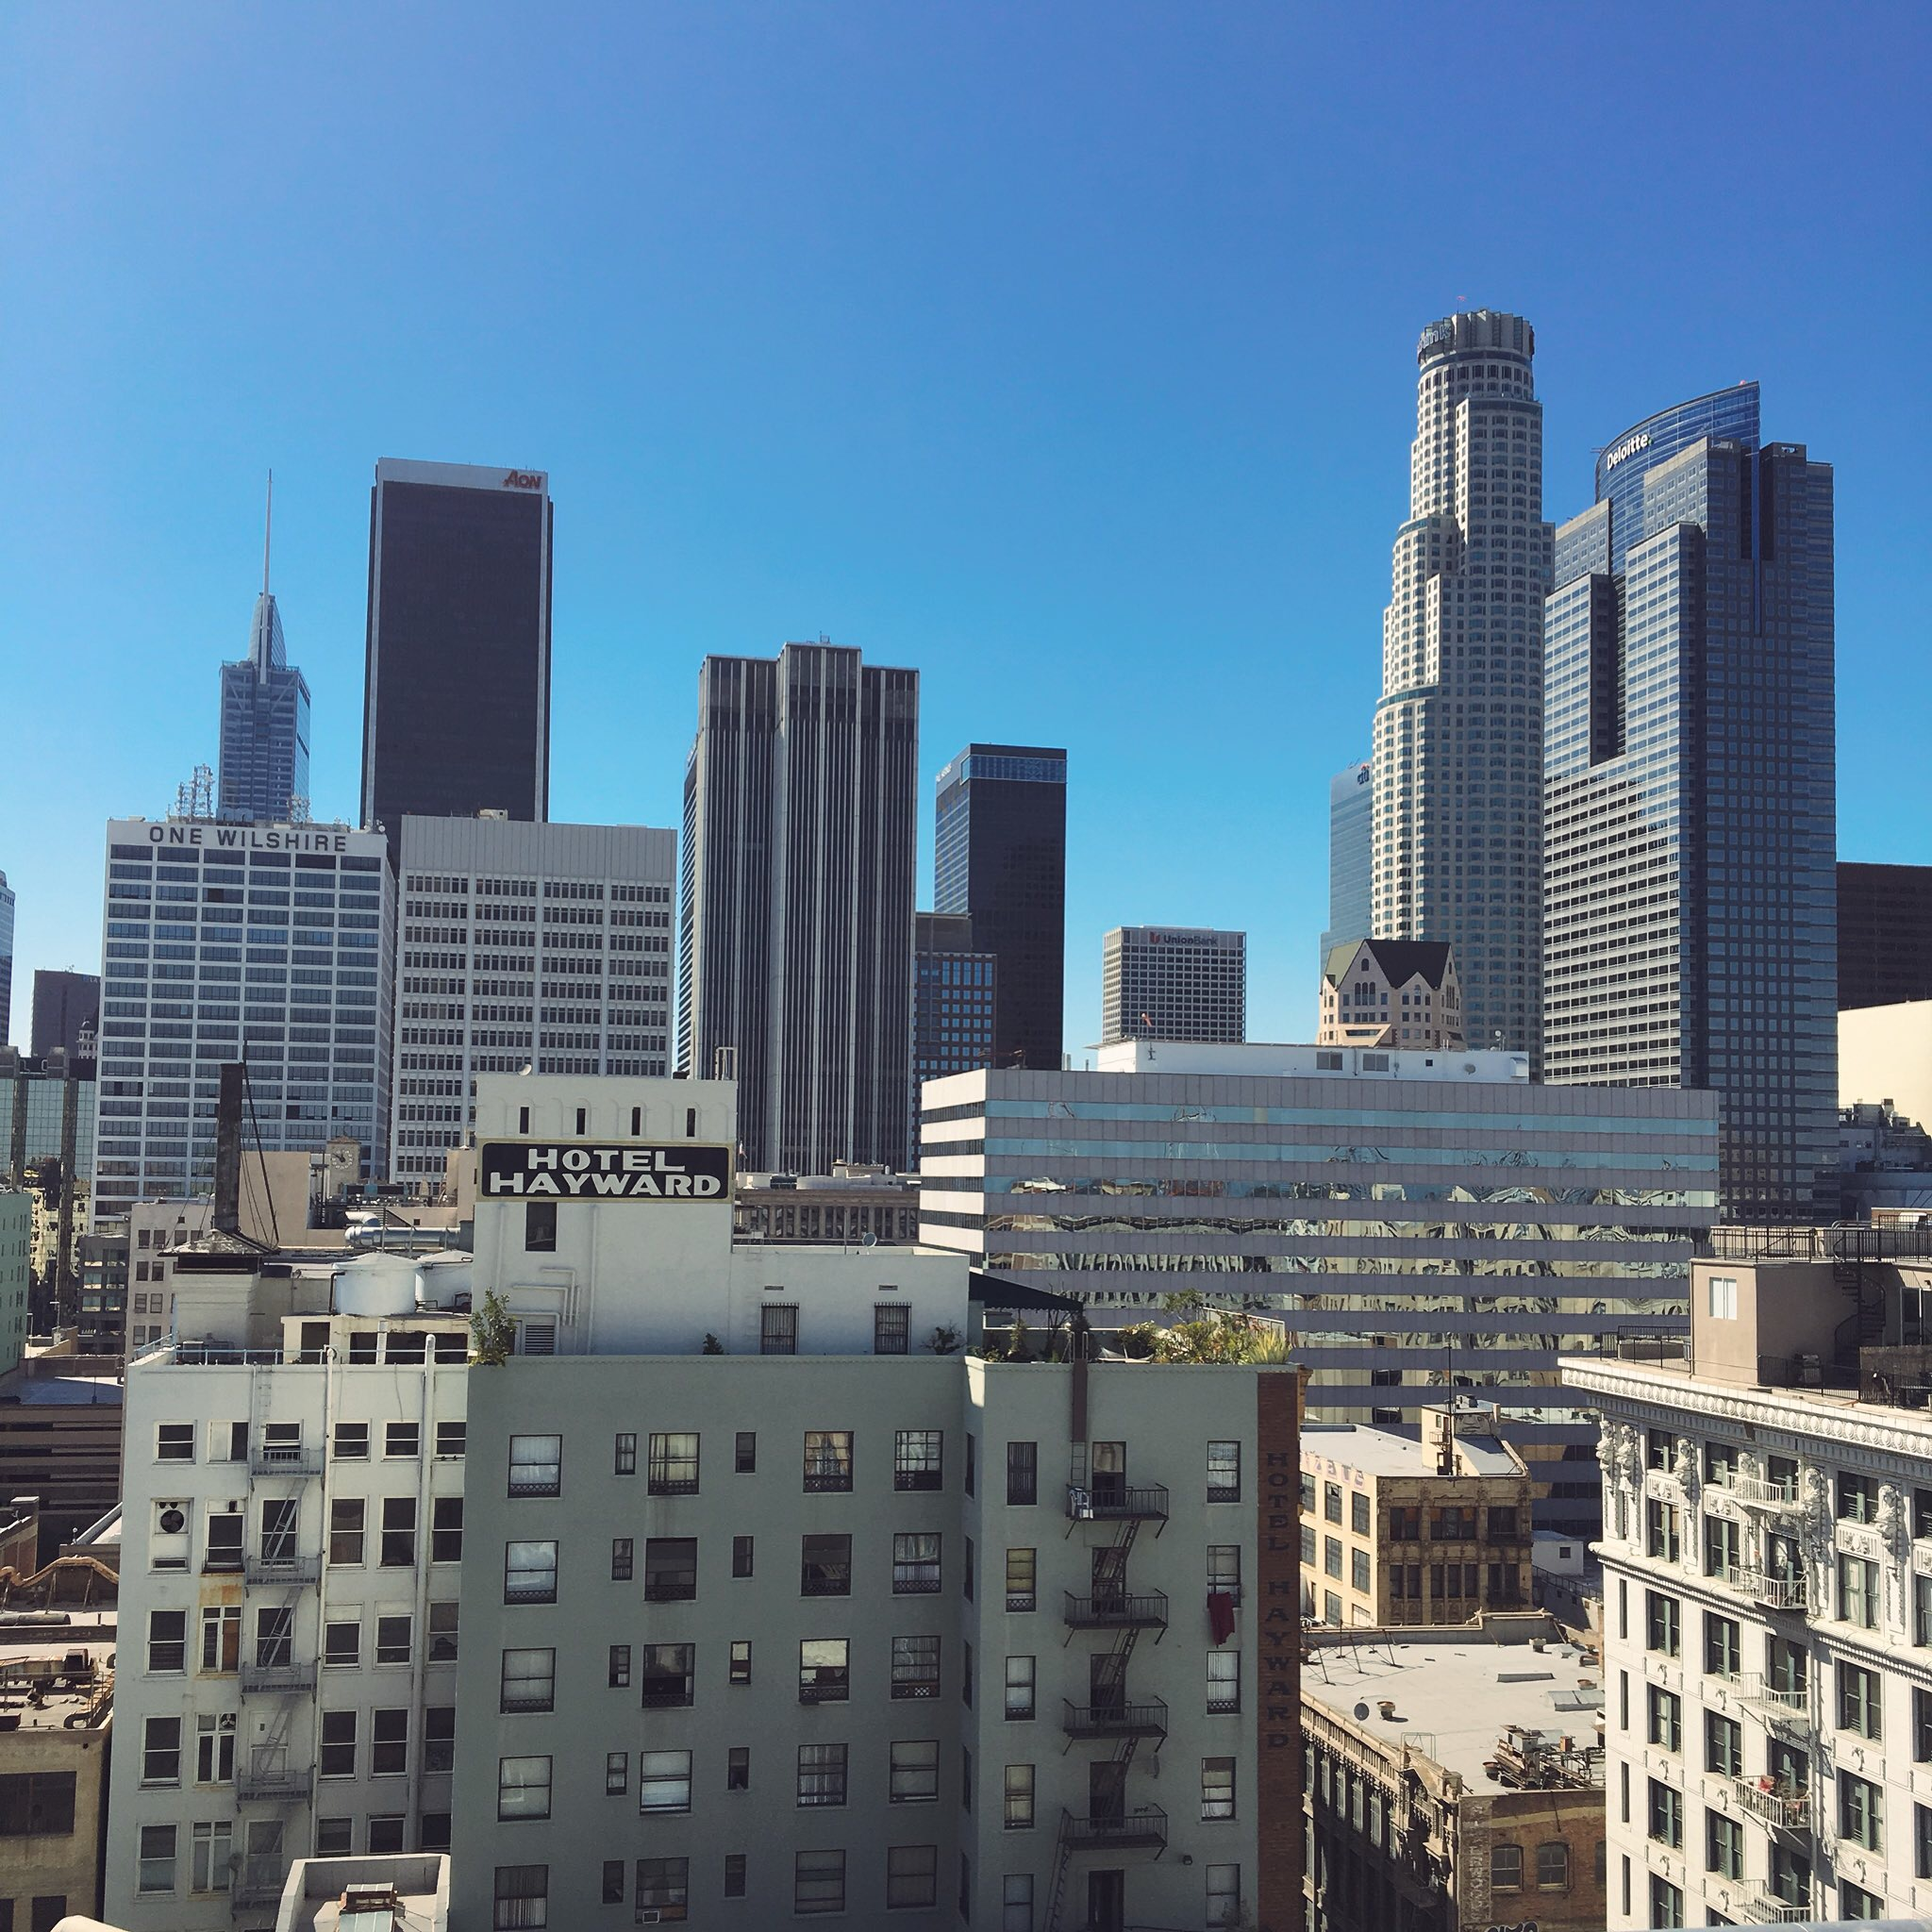 I stayed in an amazing loft I found on AirBnB in the heart of downtown Los Angeles.